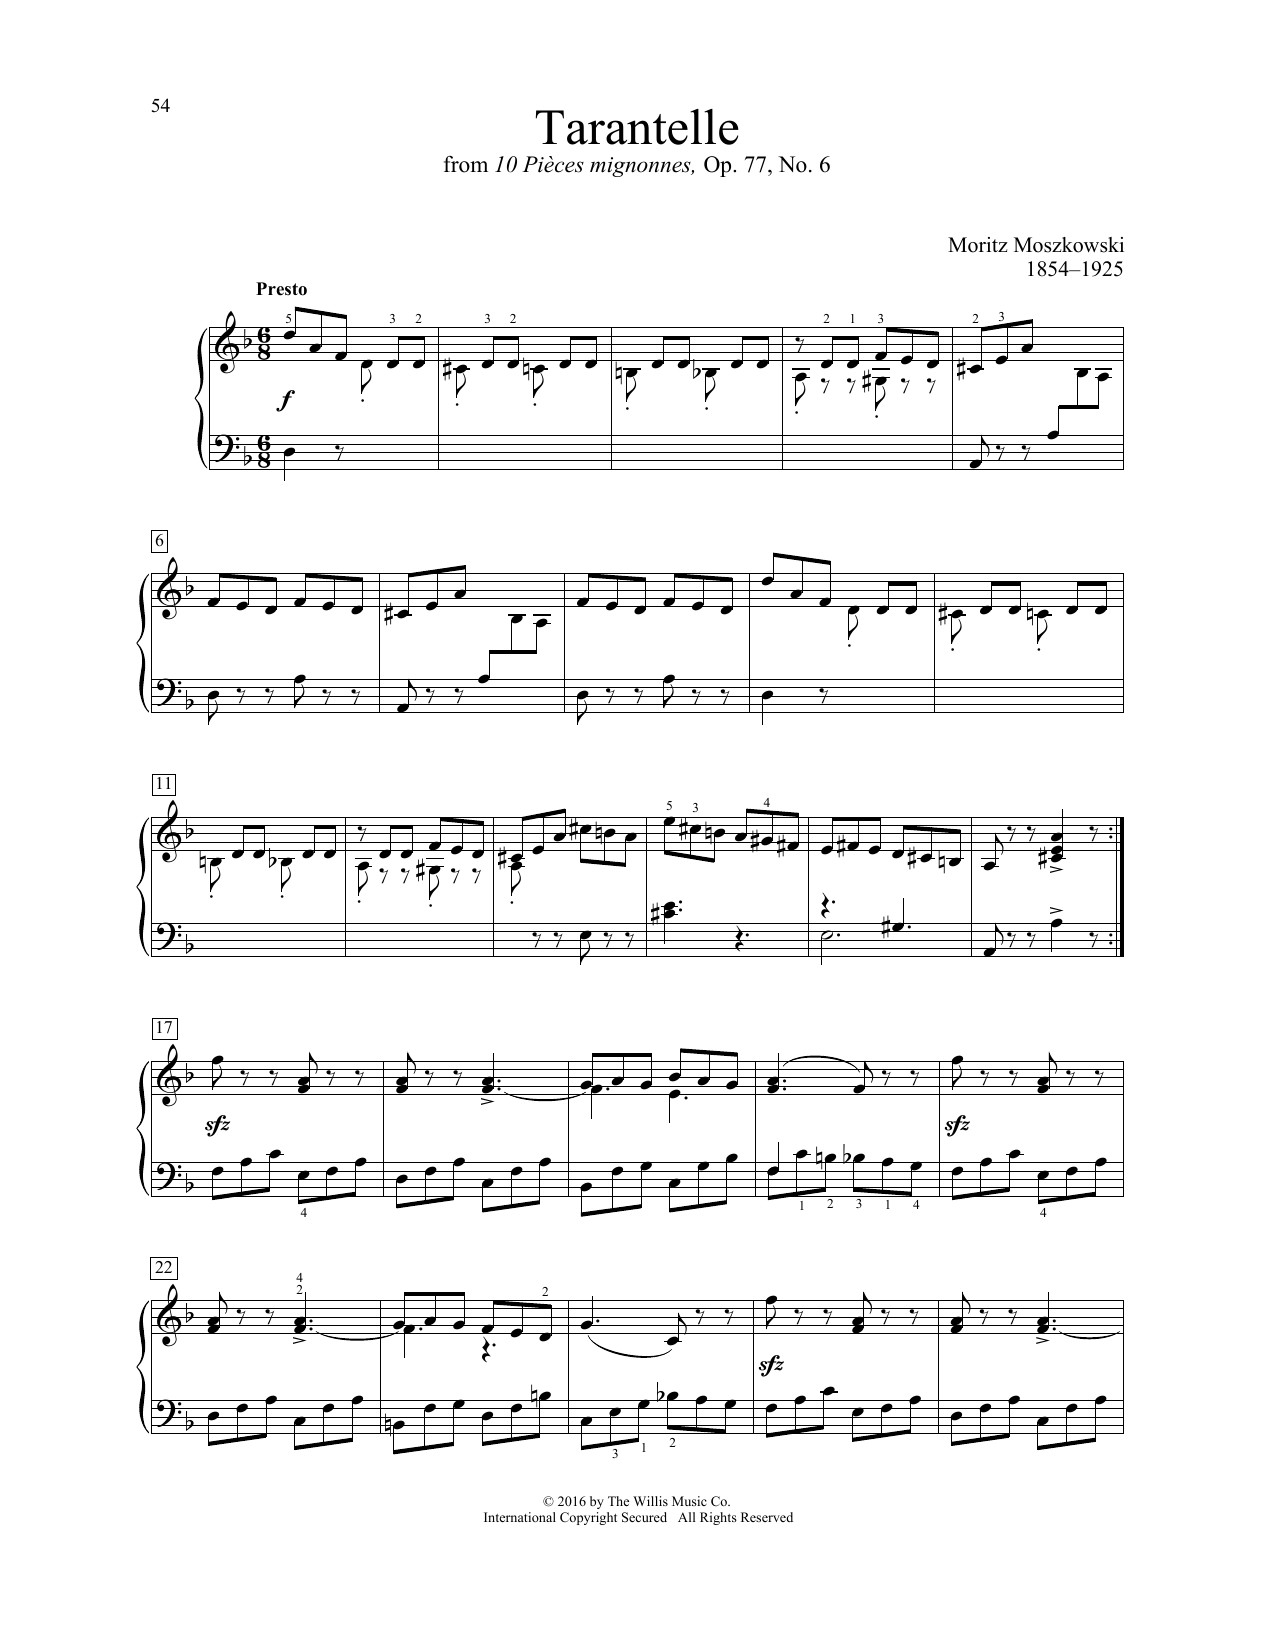 Moritz Moszkowski Tarantelle sheet music notes and chords. Download Printable PDF.